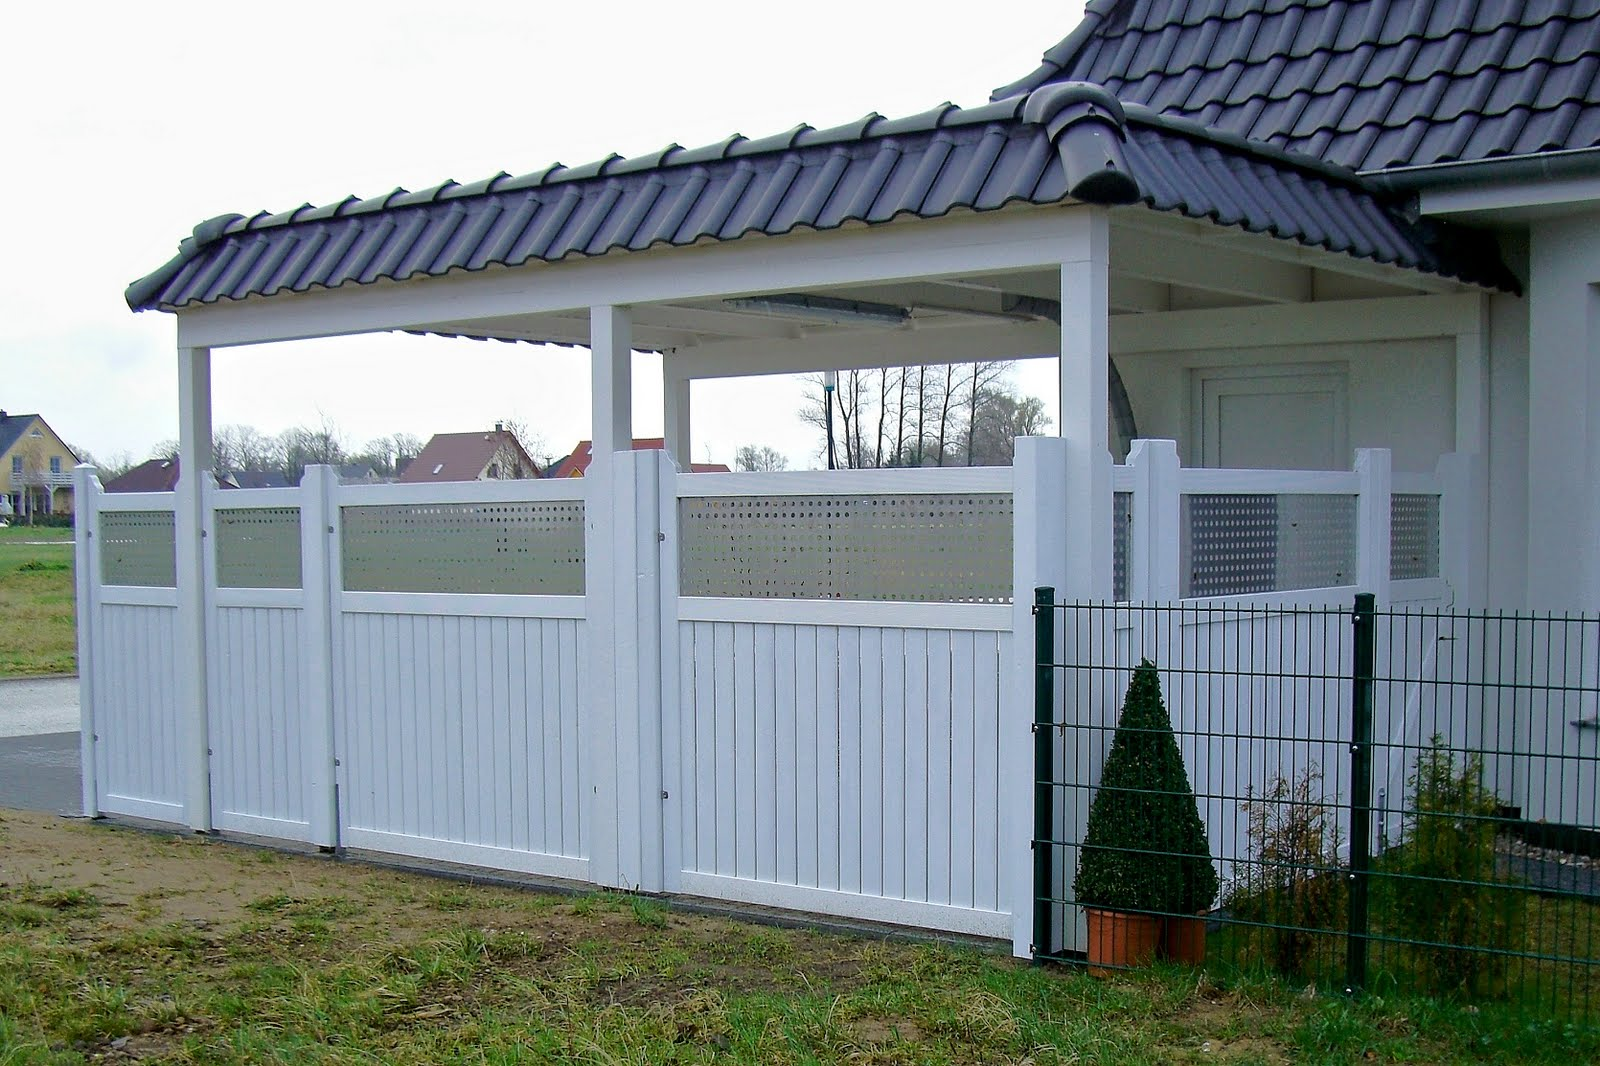 montage von handels blichen sichtschutzw nden f r carport und terrasse april 2011 gibt s was. Black Bedroom Furniture Sets. Home Design Ideas